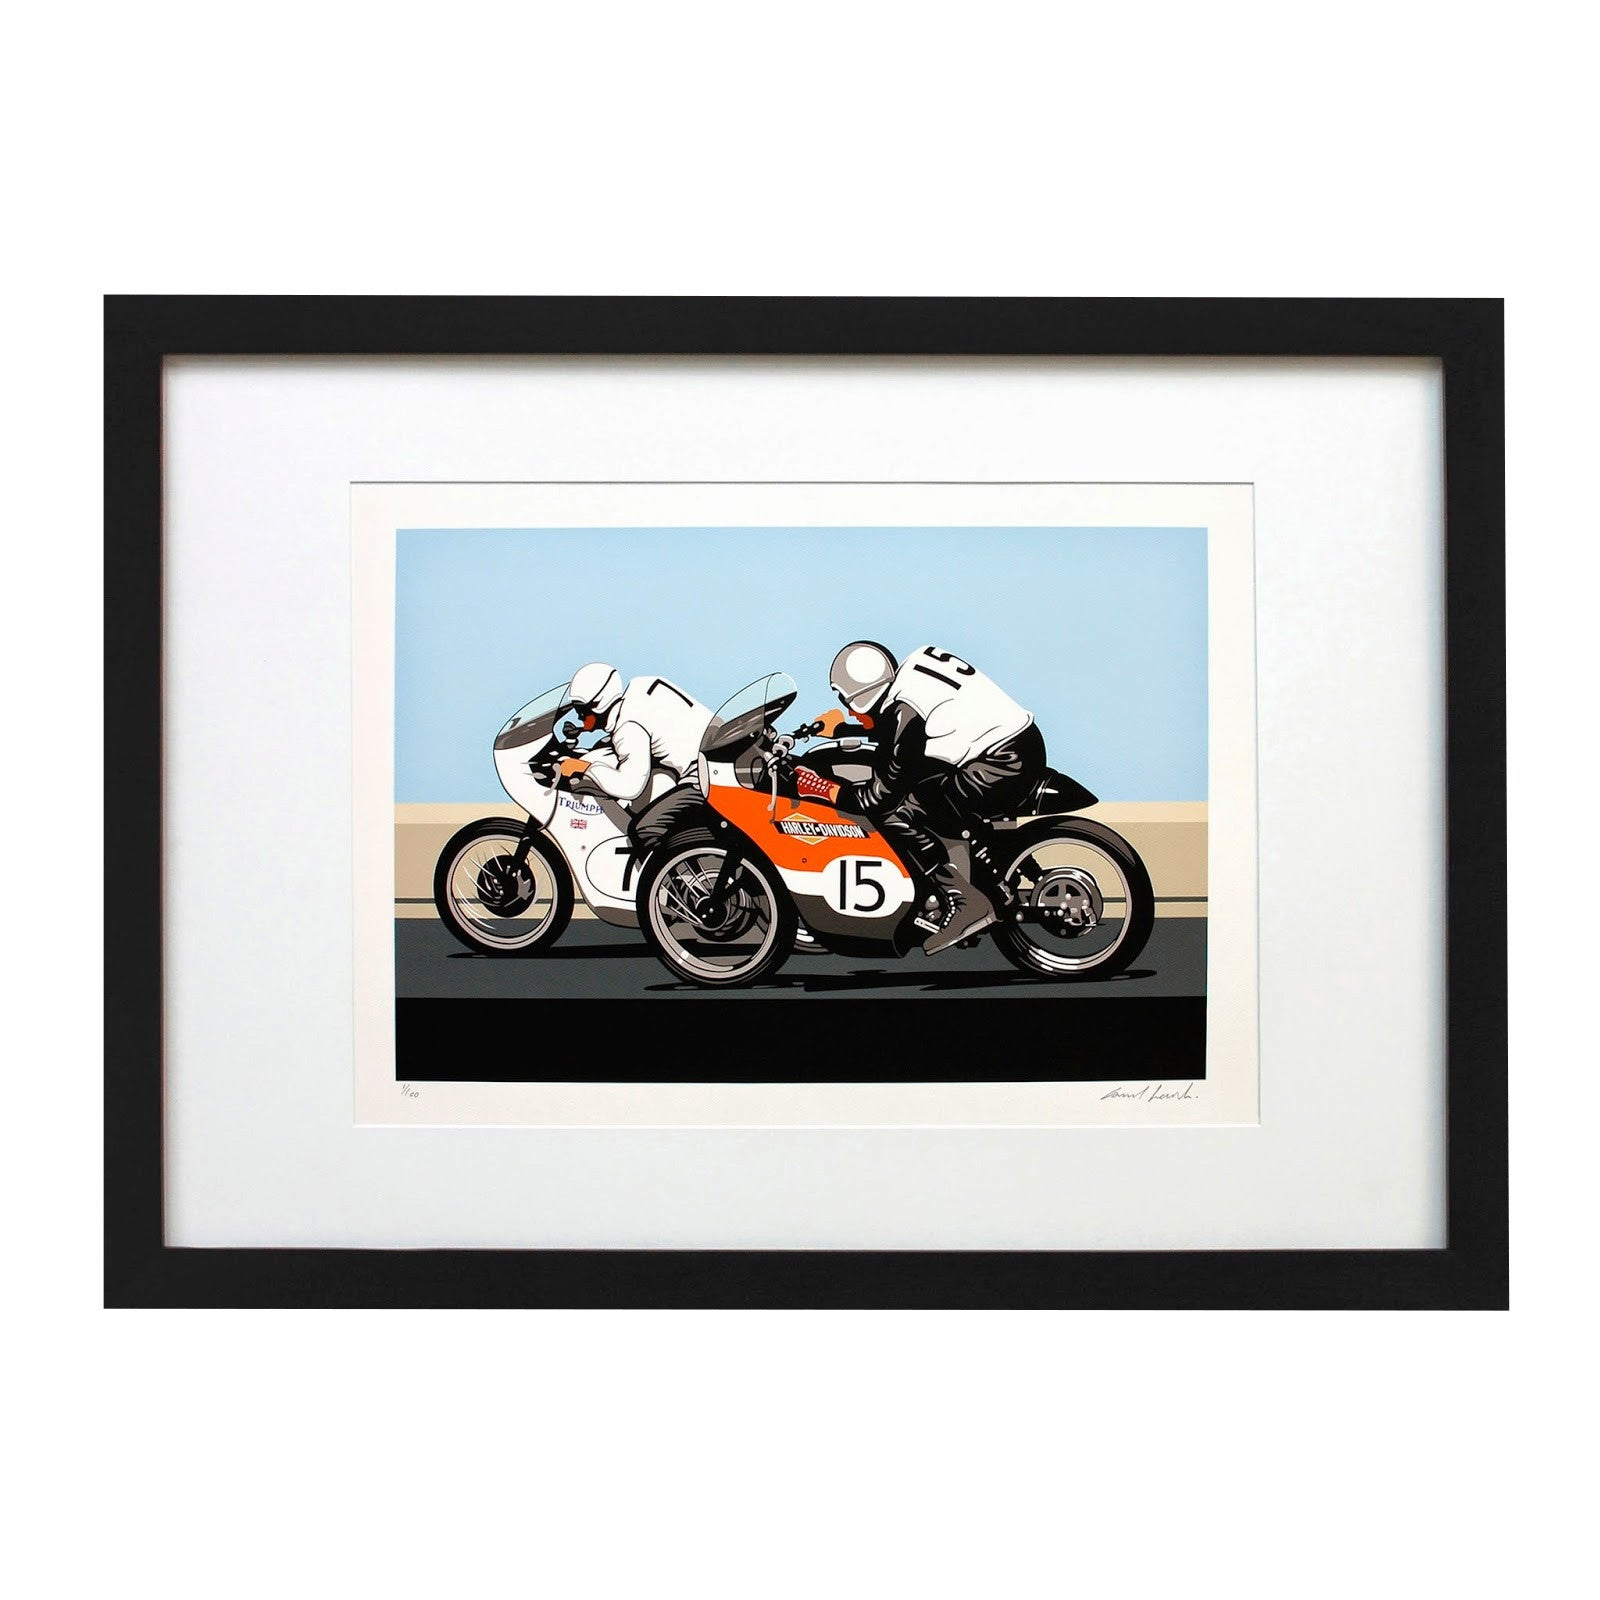 GLOVES OFF LIMITED EDITION PRINT - Heroes Motorcycles